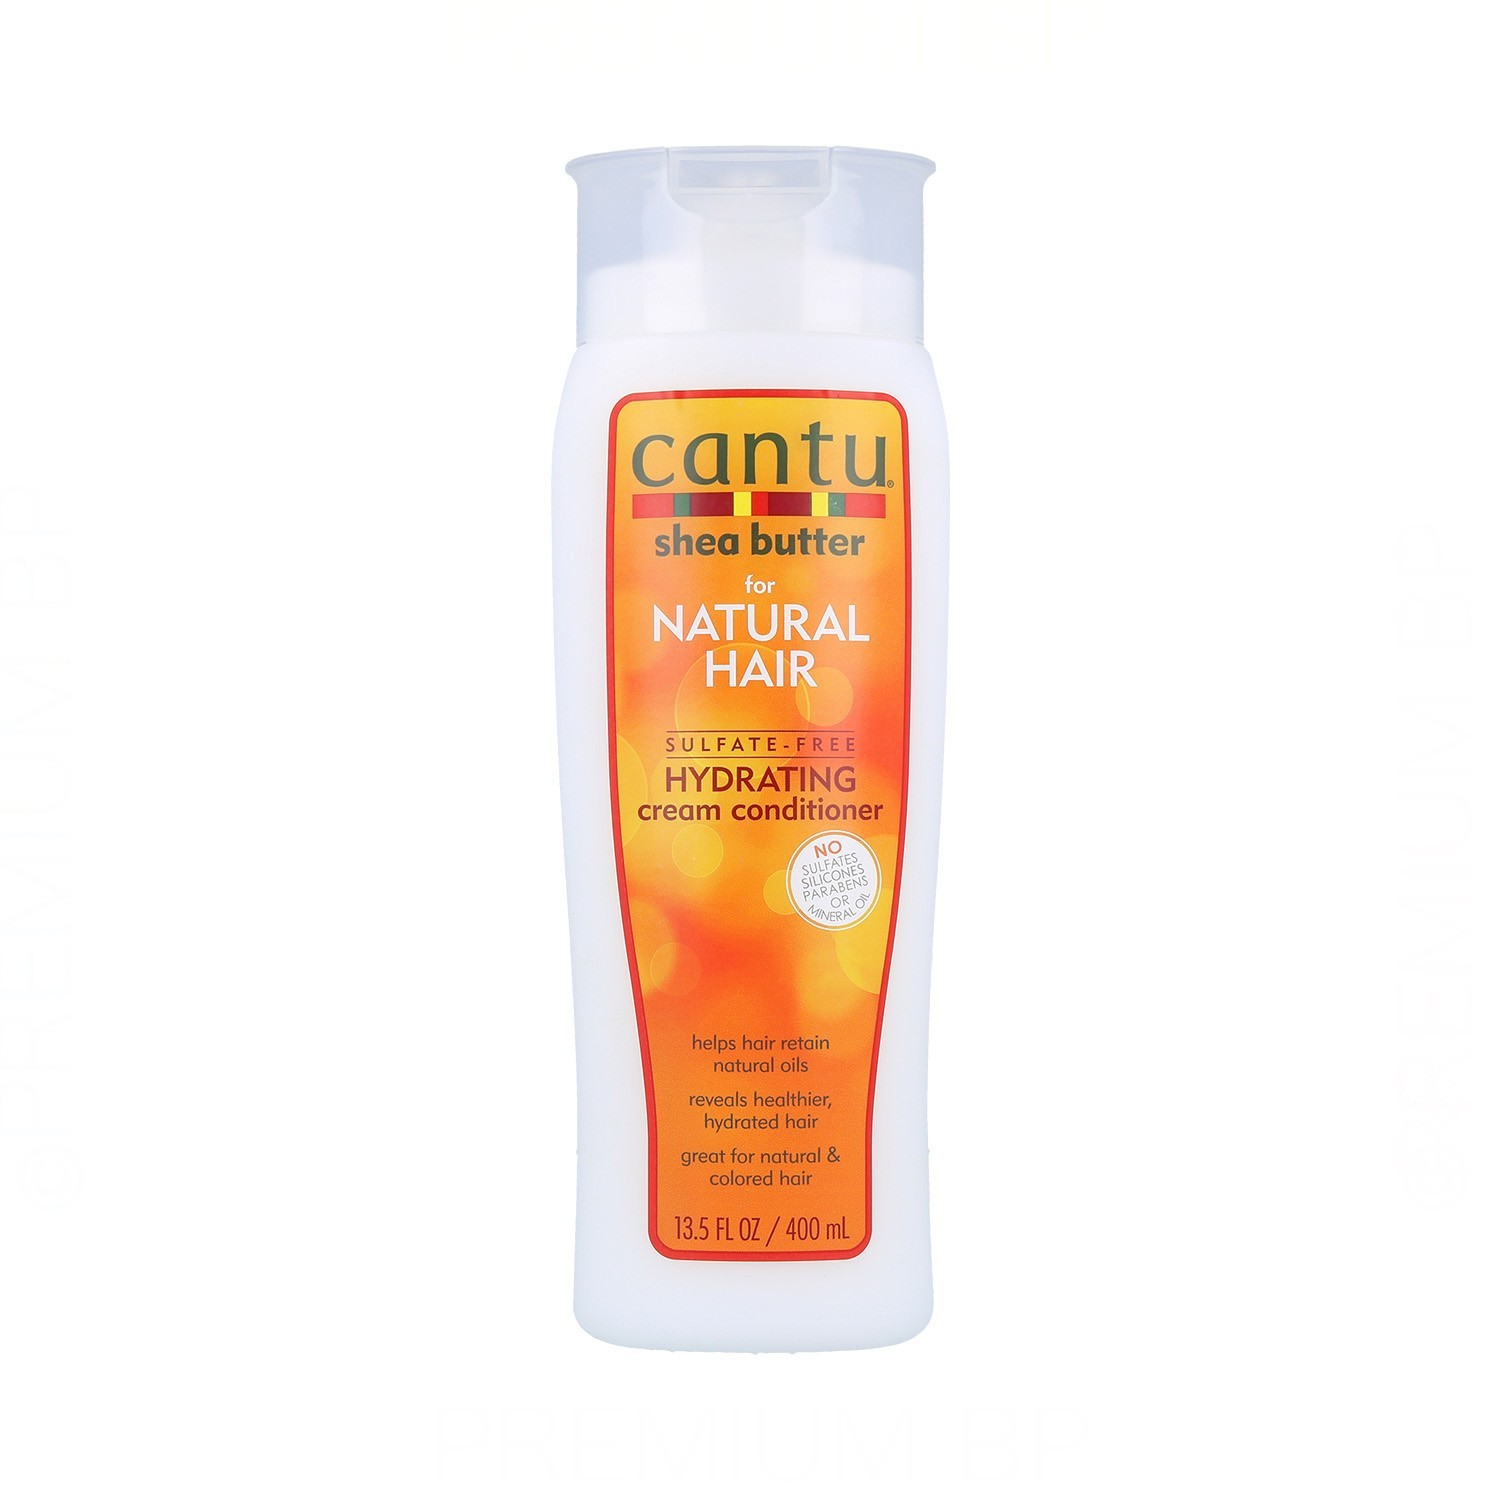 Cantu Shea Butter Natural Hair Hydrating Conditioner 400 Ml